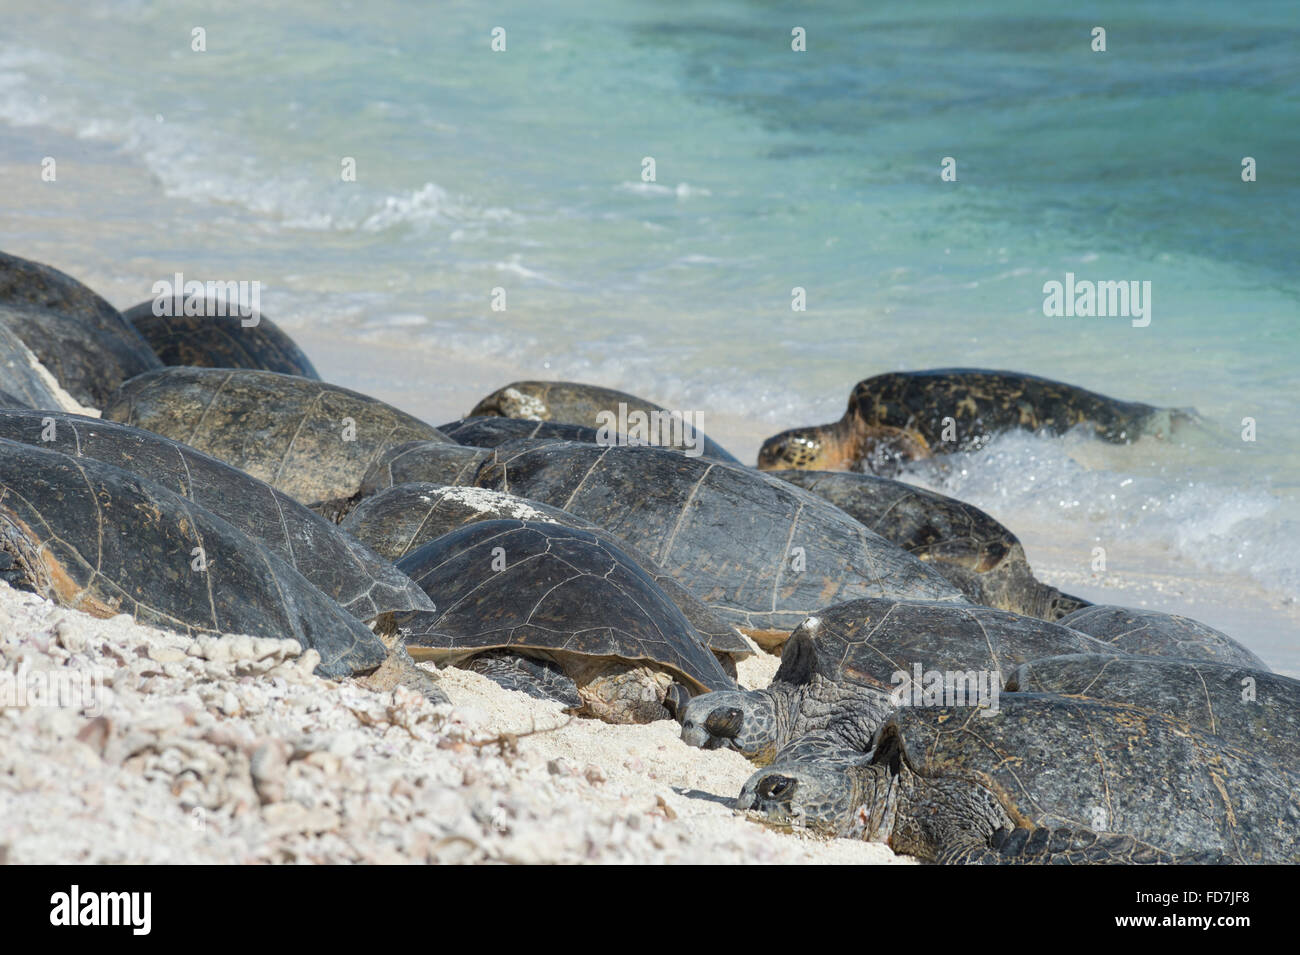 green sea turtles, Chelonia mydas ( Threatened Species ), basking on beach, French Frigate Shoals, Northwestern - Stock Image